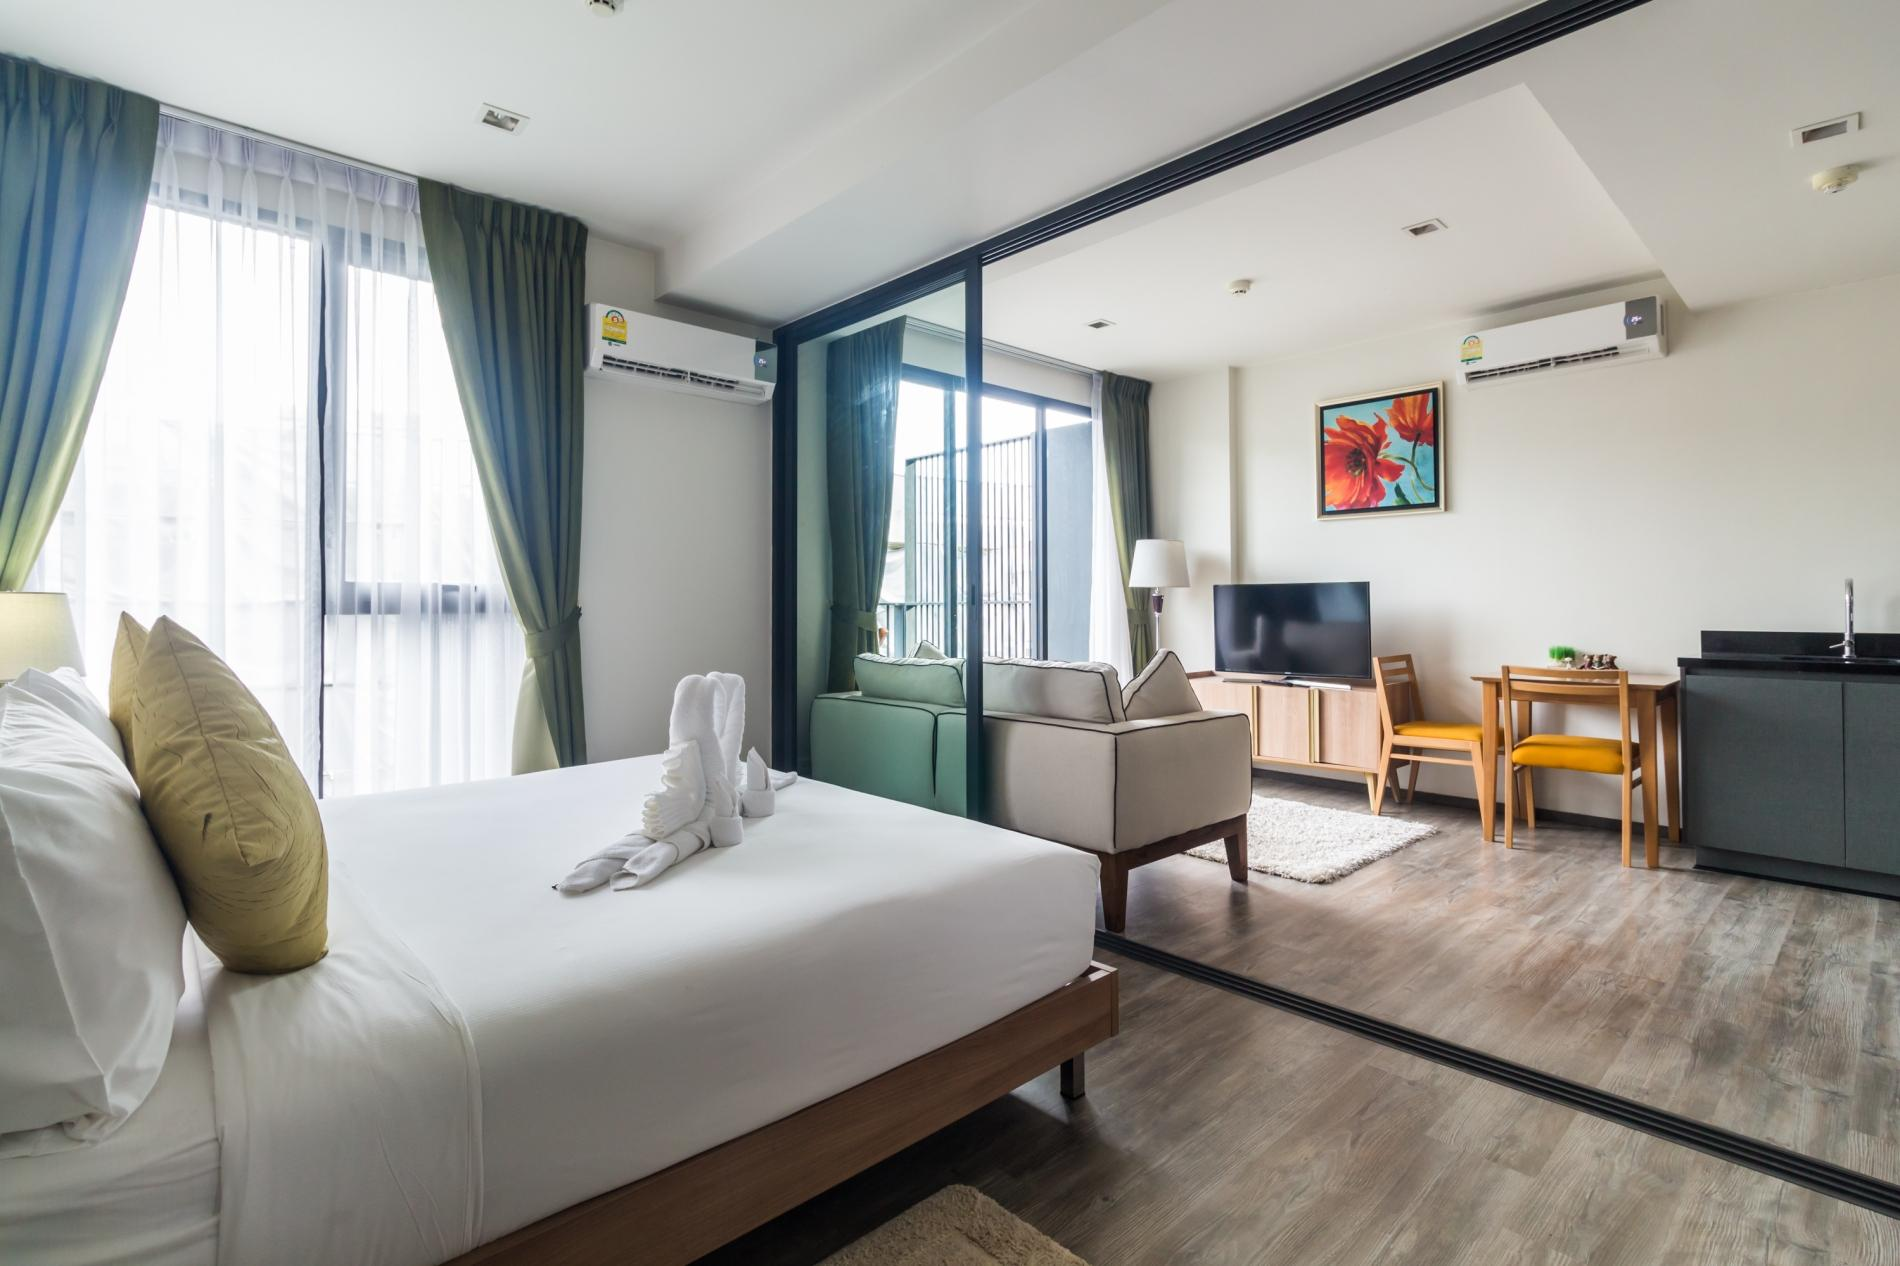 Apartment D9 - The Deck Patong  rooftop pool  gym and great location  photo 16965628